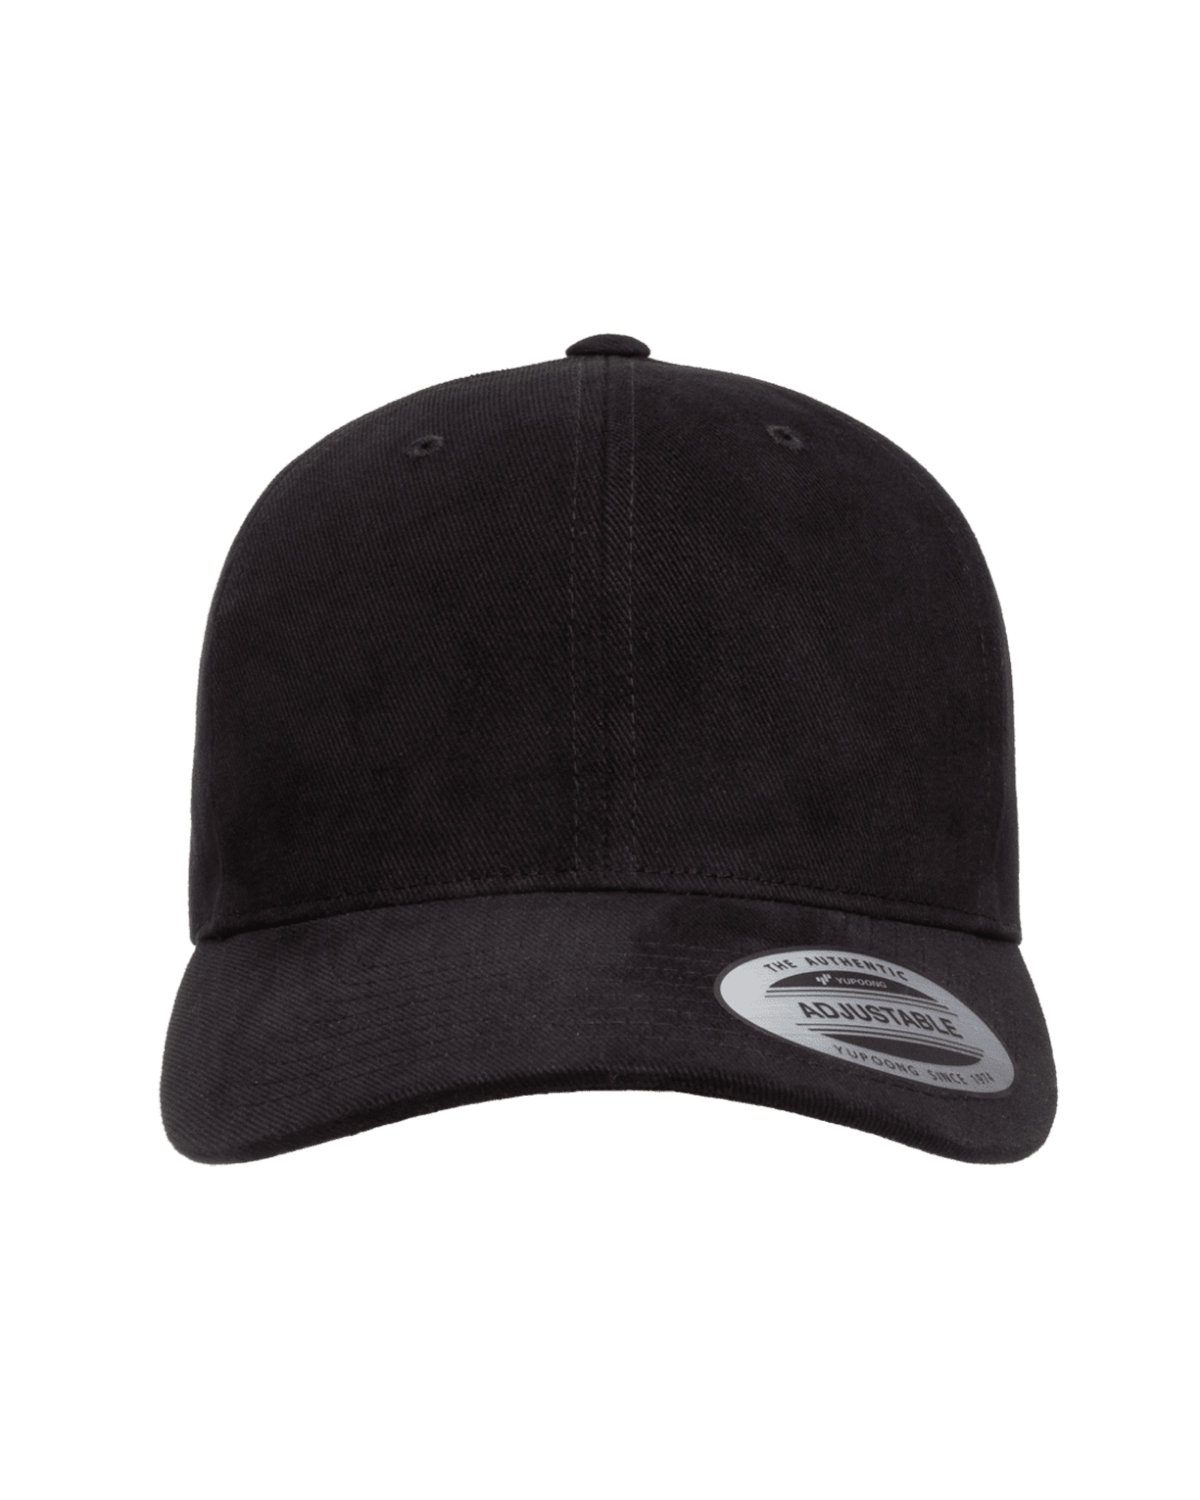 Yupoong Adult Brushed Cotton Twill Mid-Profile Cap BLACK